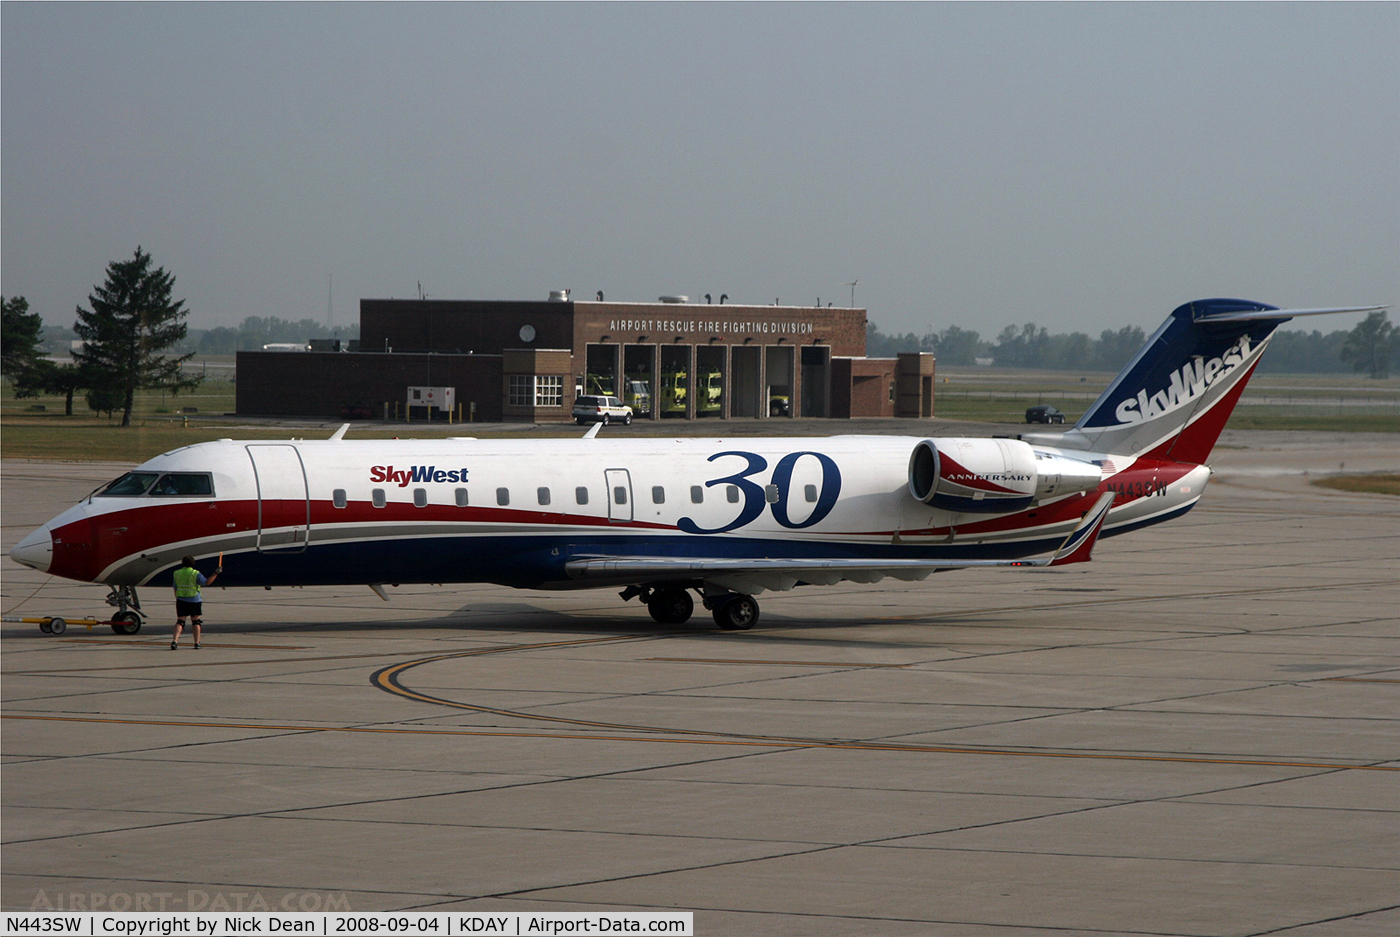 N443SW, Bombardier CRJ-200LR (CL-600-2B19) C/N 7638, Flew in this from ORD-DAY